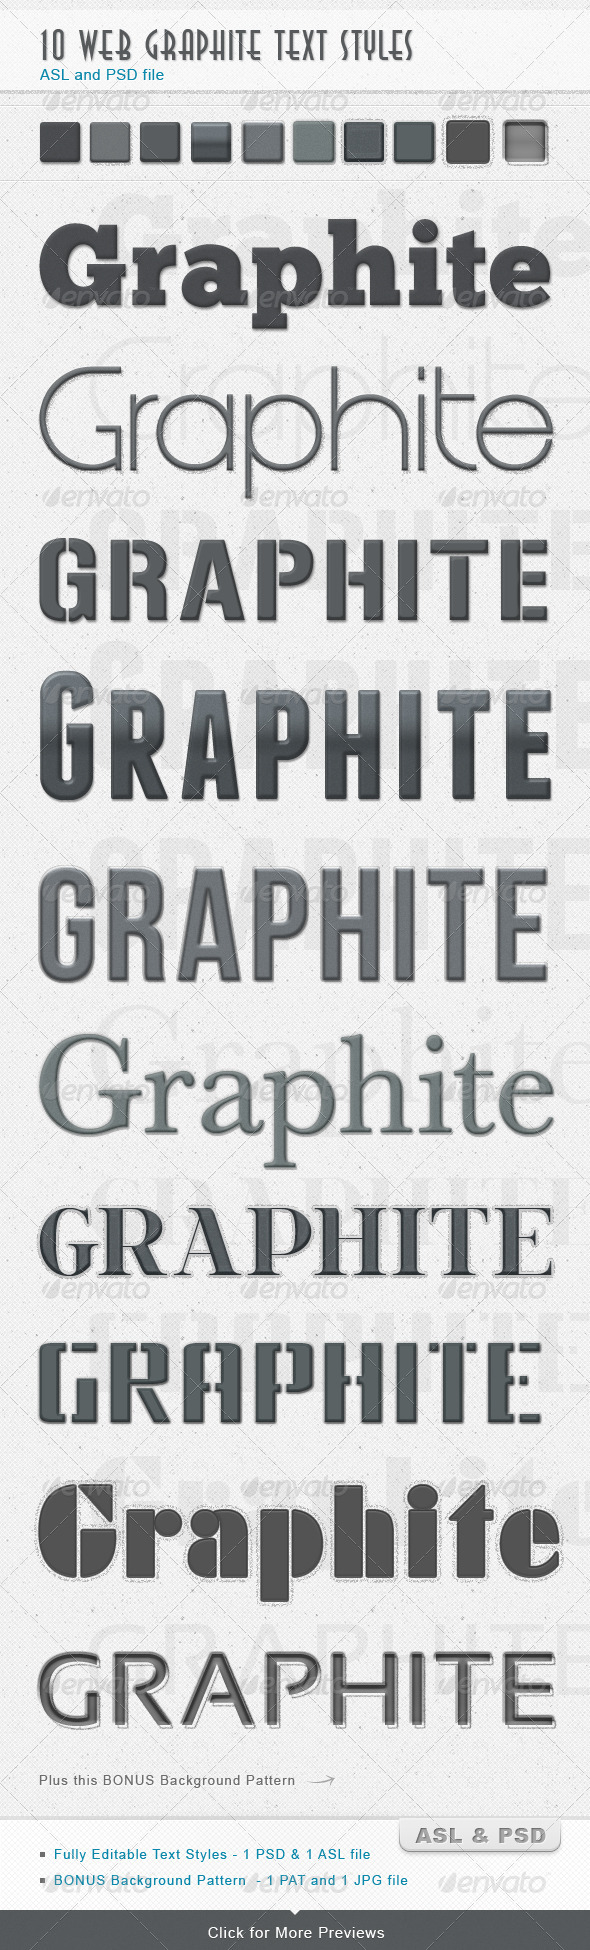 Graphic River Graphite Text Styles Add-ons -  Photoshop 1505747